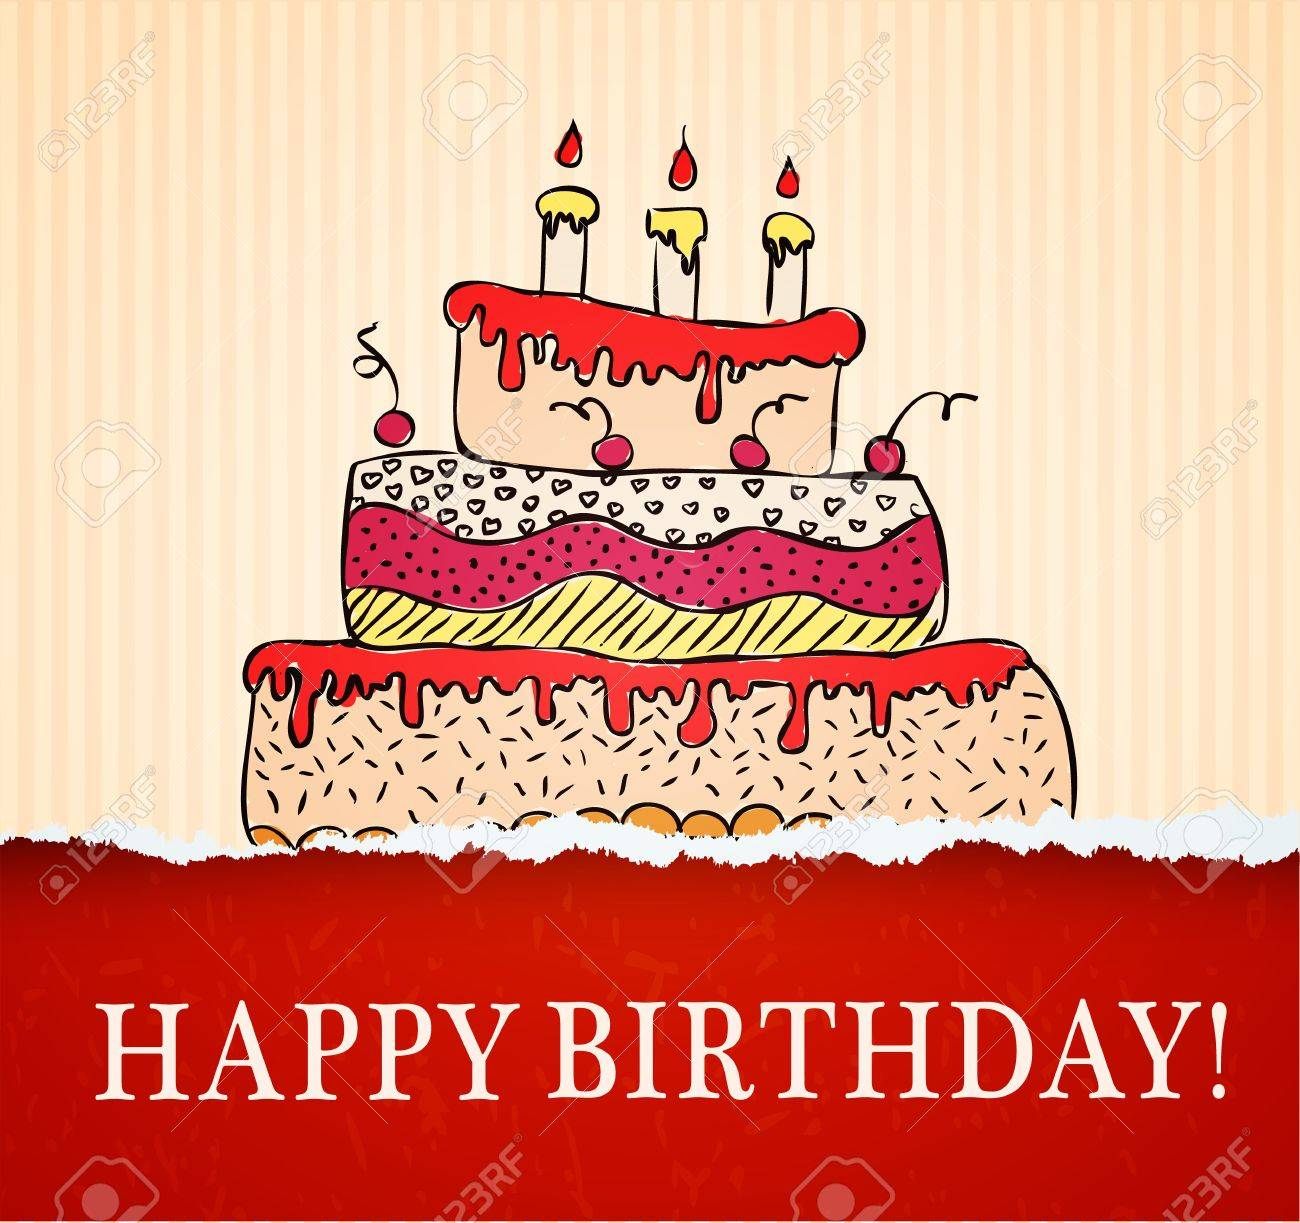 Birthday card hand drawn with cake on paper texture illustration birthday card hand drawn with cake on paper texture illustration stock vector 19392518 kristyandbryce Image collections